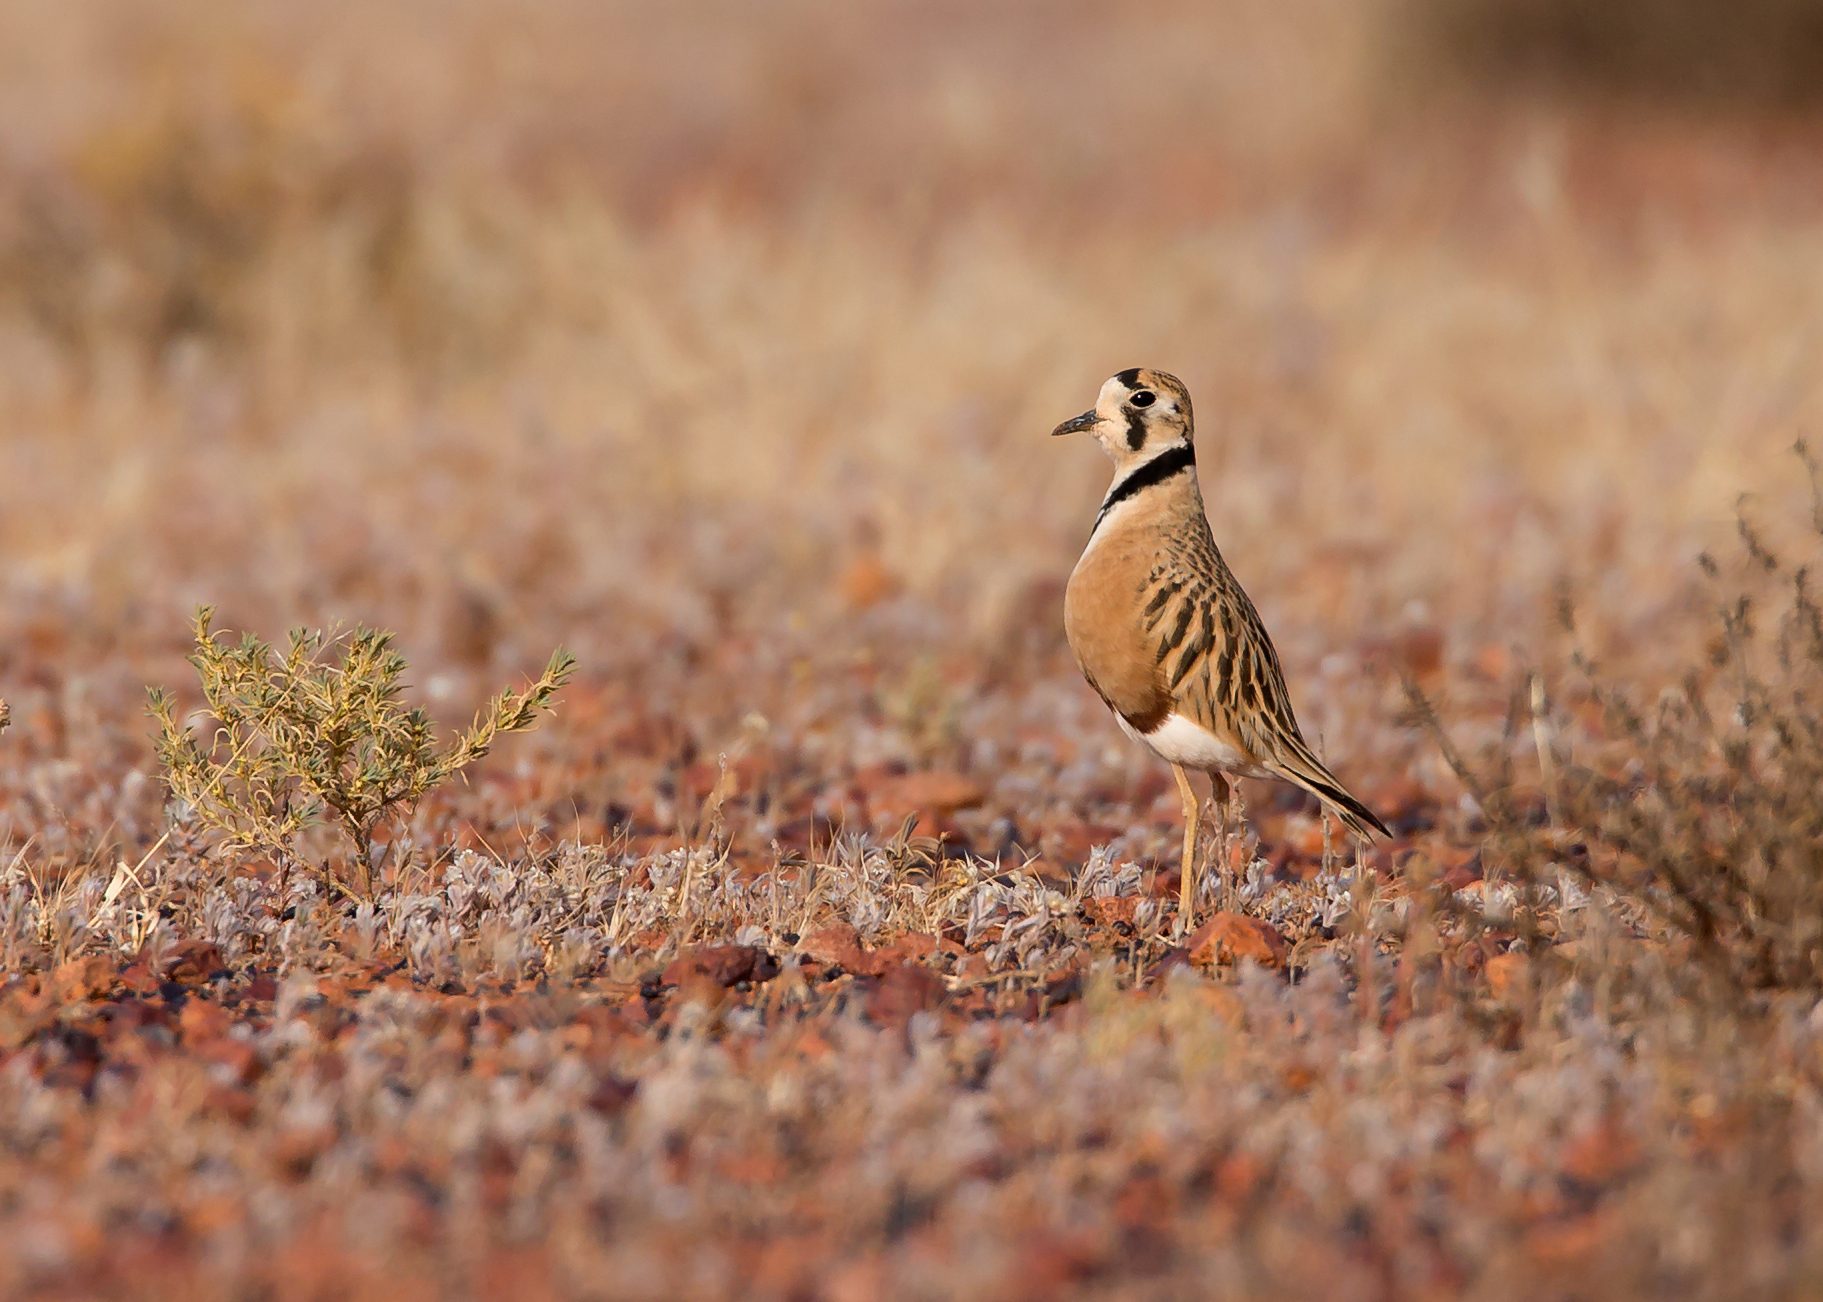 Inland Dotterel, Erldunda NT - one of the most wanted birds of Australia's vast outback